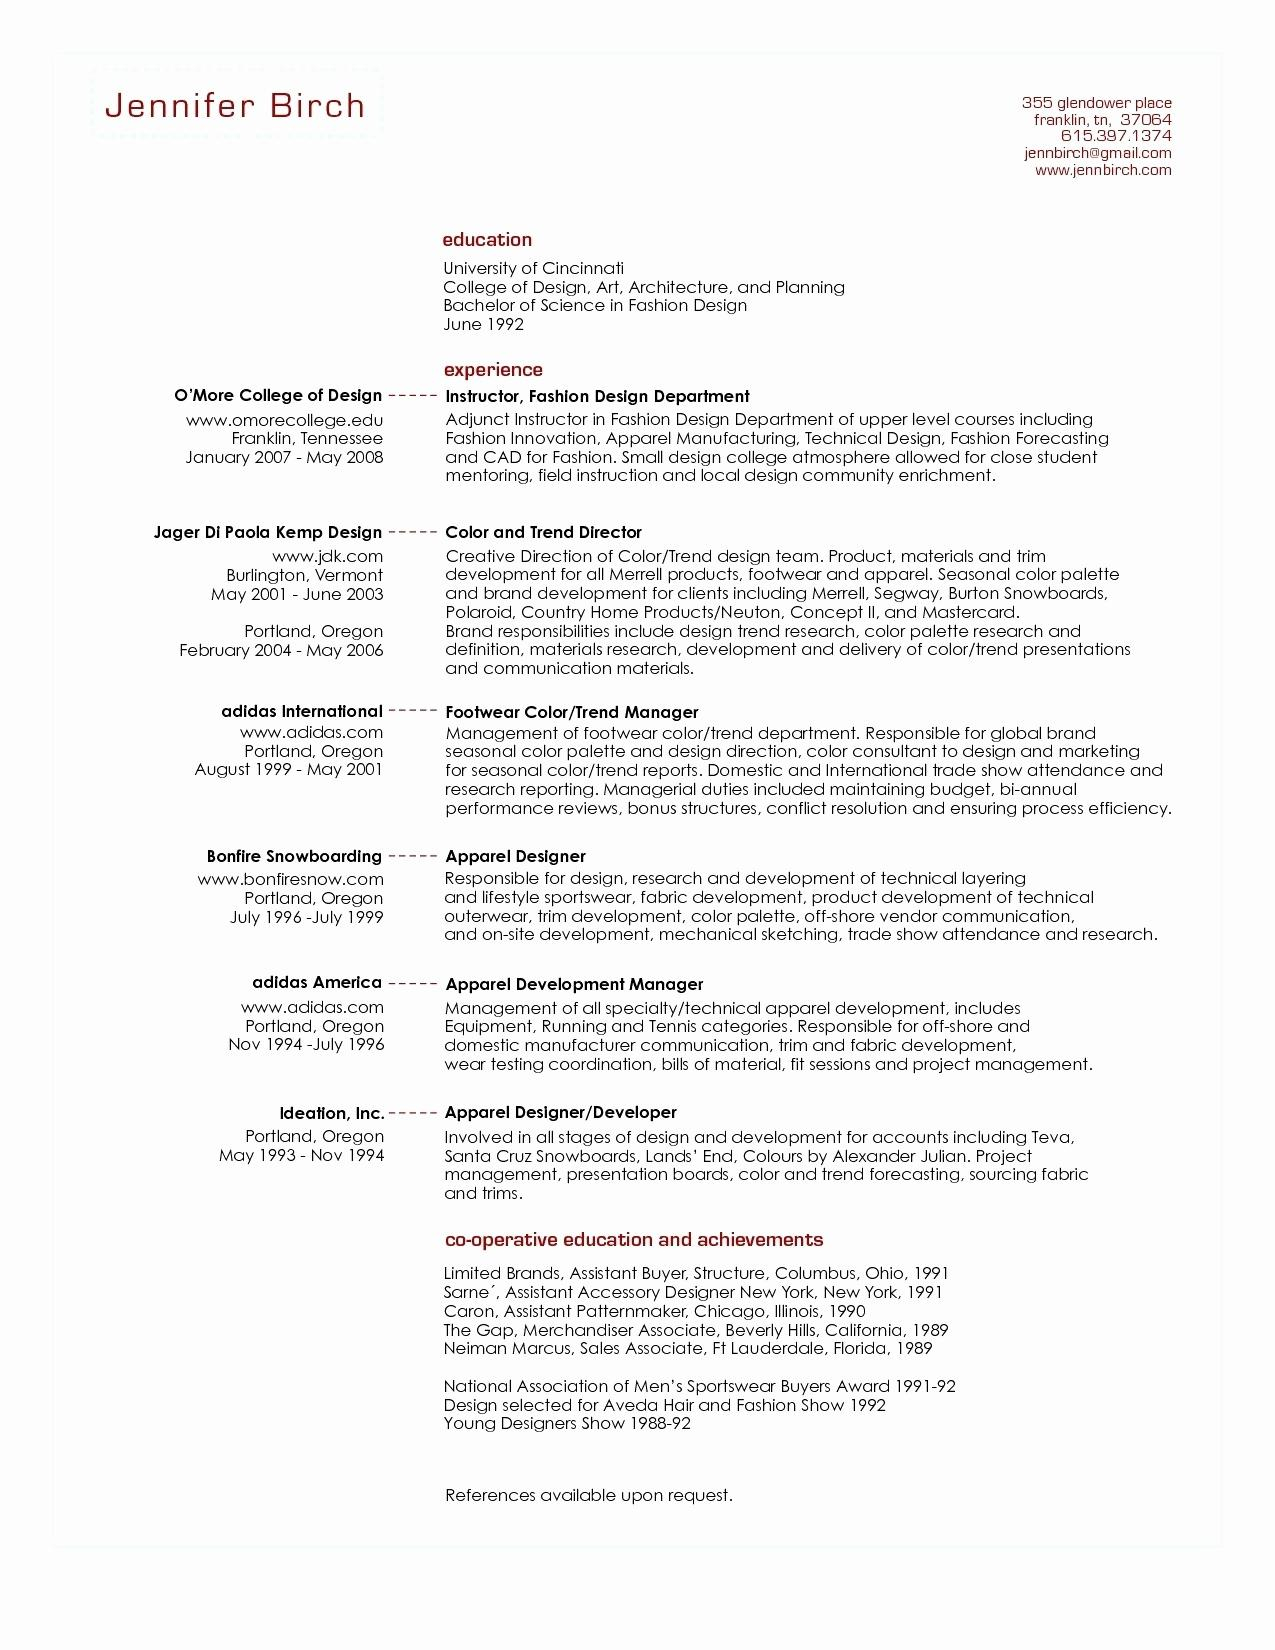 bba resume template Collection-Resume format for Bba Graduates Luxury Law Student Resume Template Best Resume Examples 0d 3-e